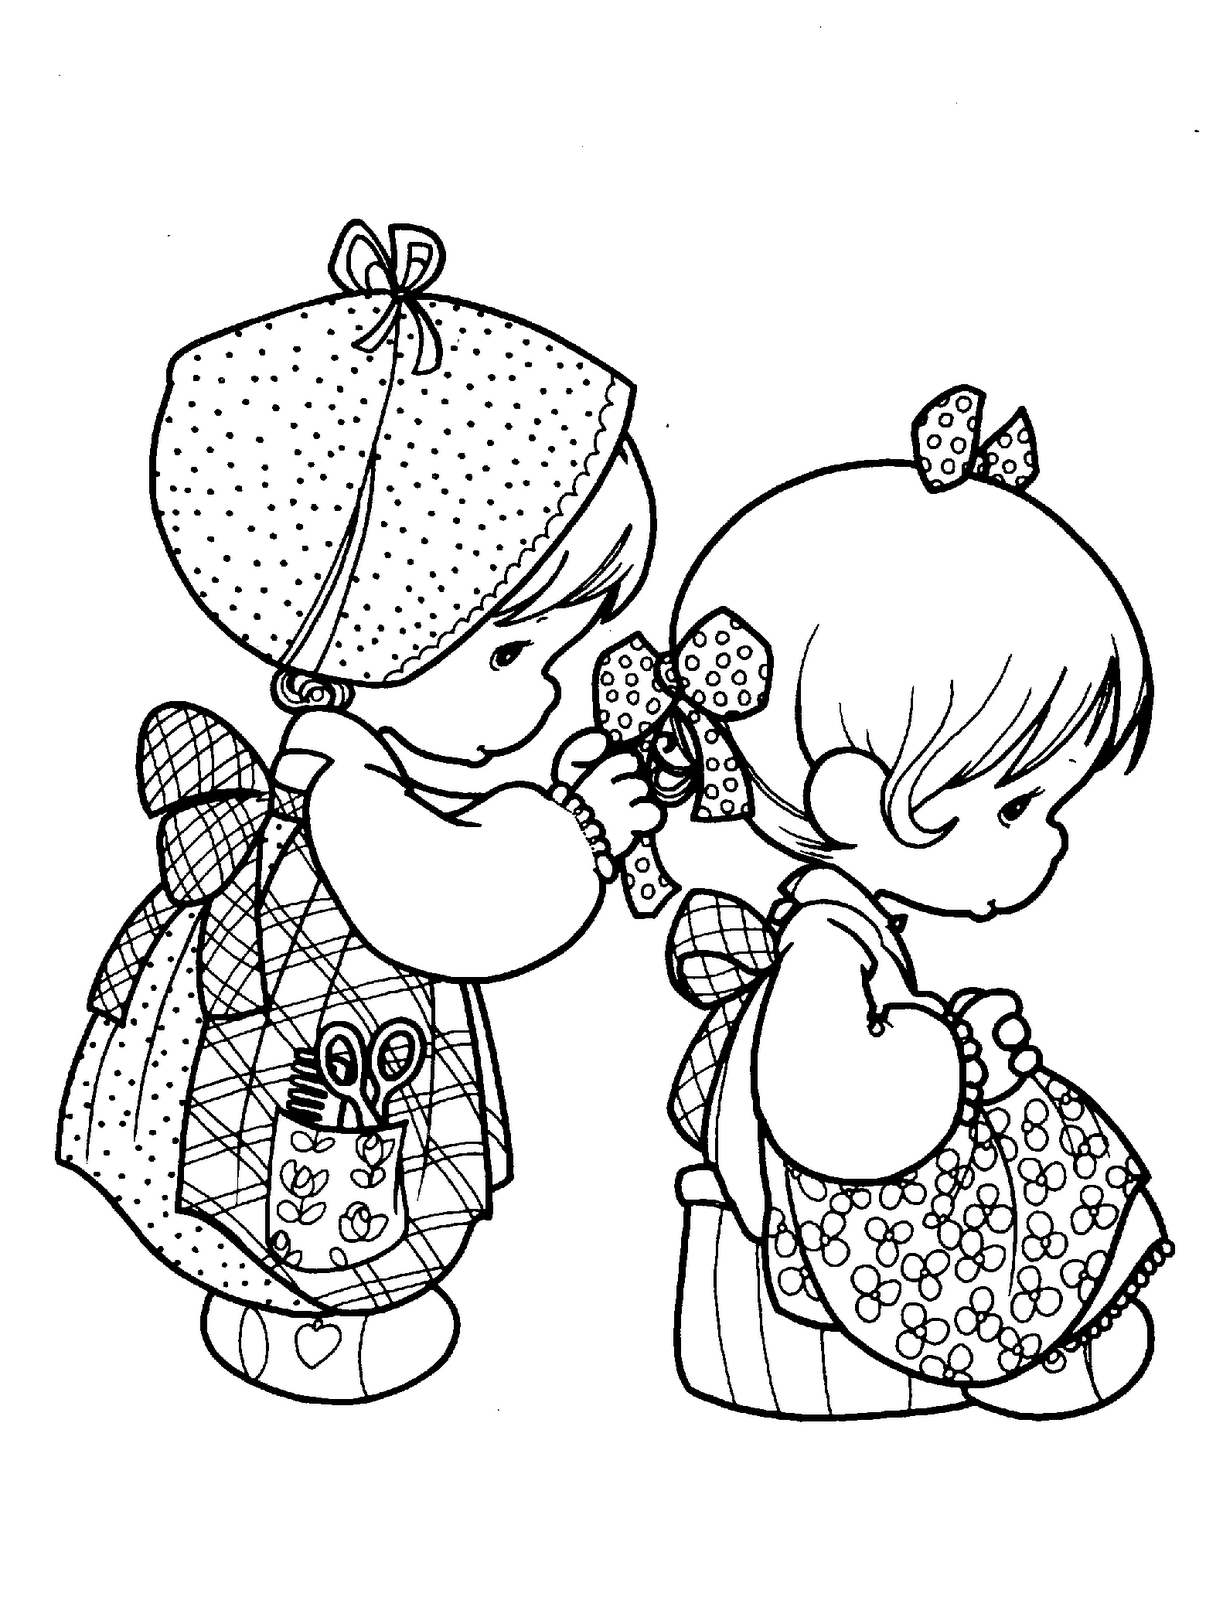 Precious Moments for Love Coloring Pages | Colouring | Pinterest ...